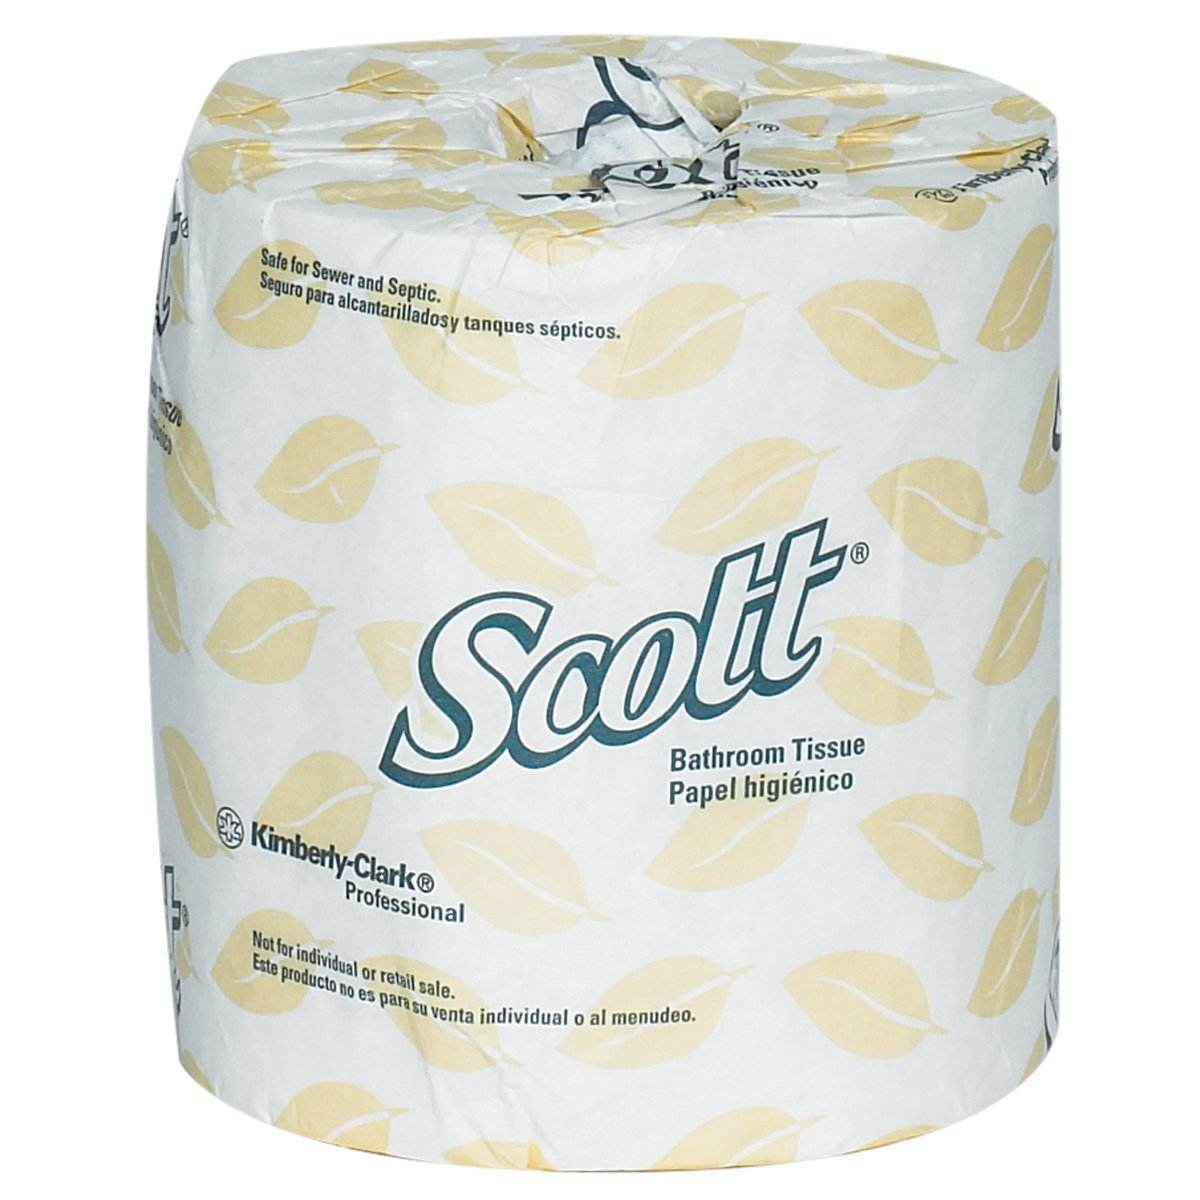 Toilet paper manufacturer design toilet paper tissue rolls china toilet paper supplier